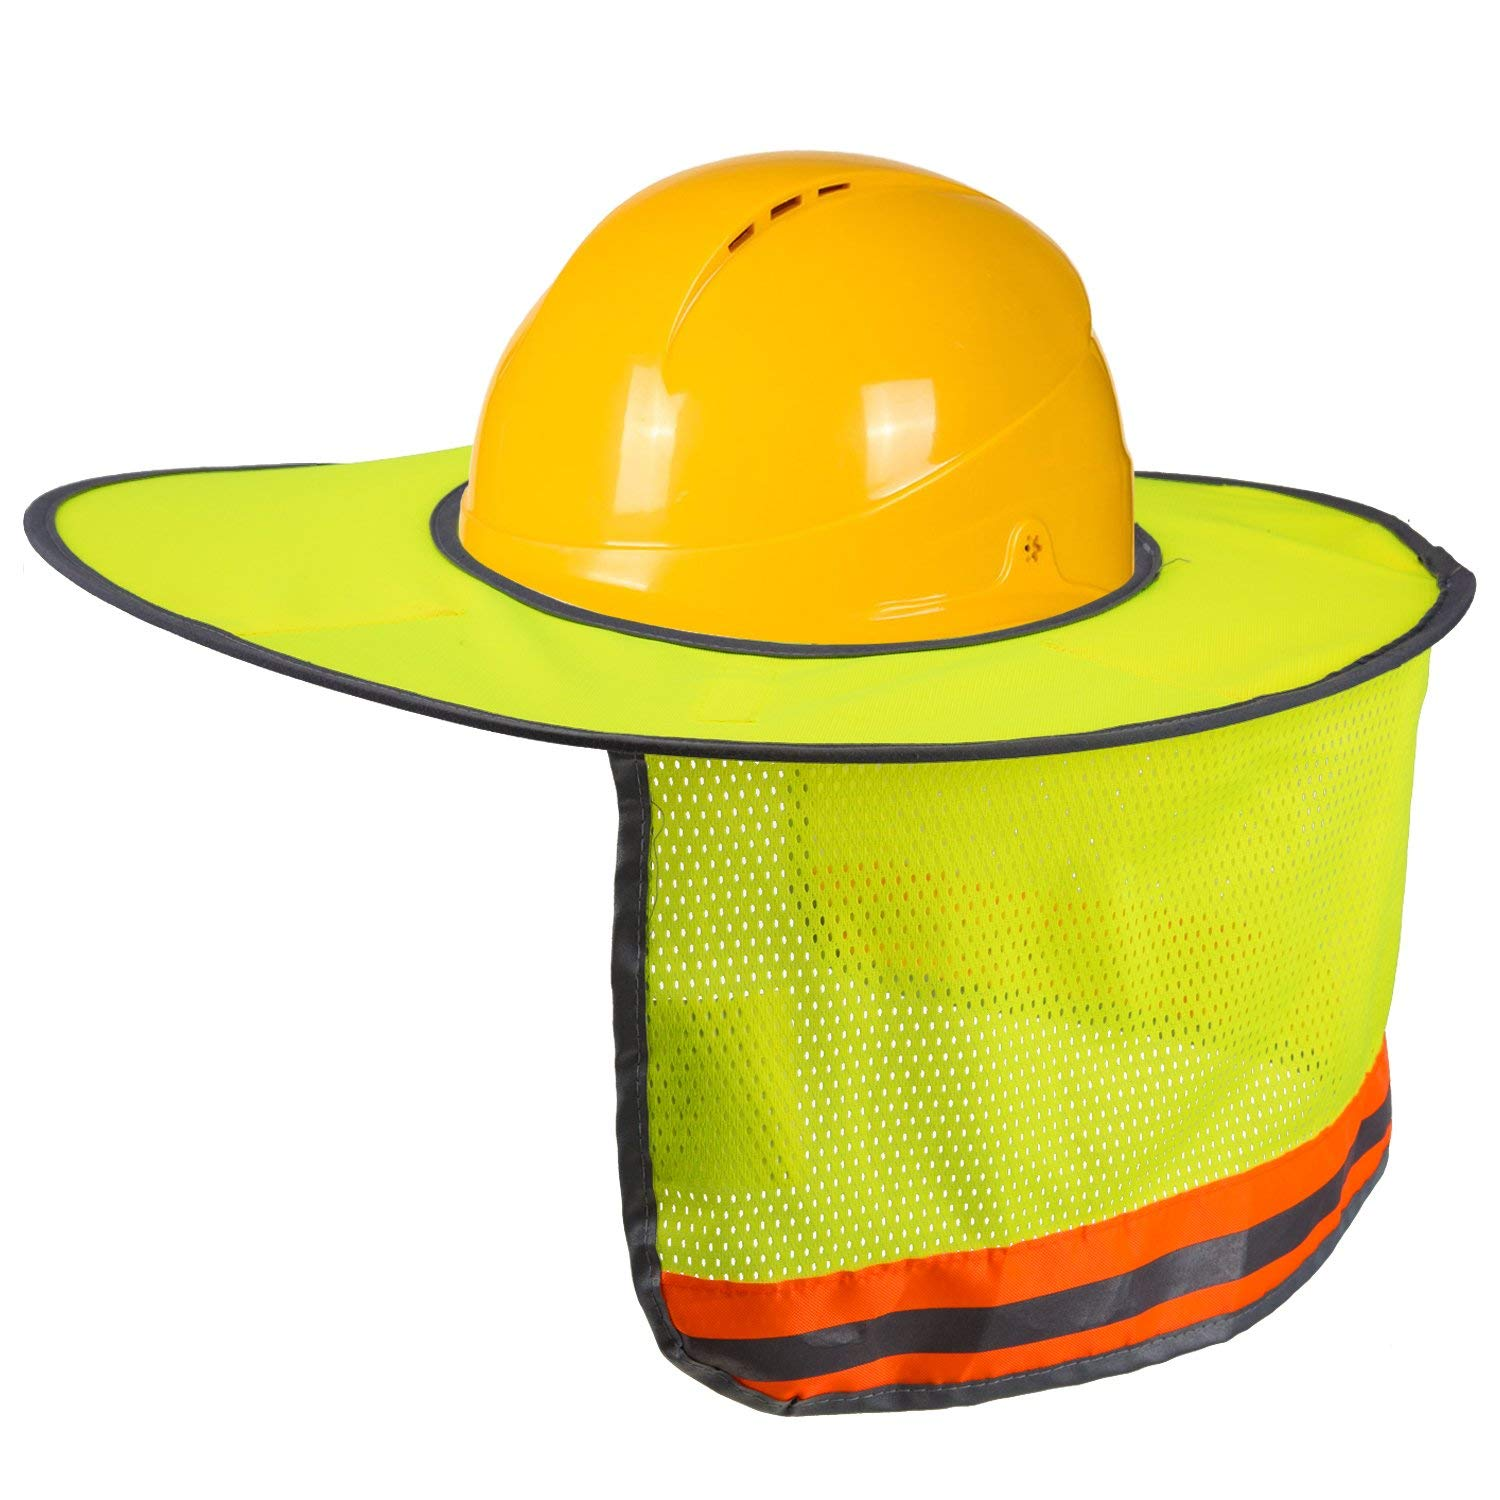 240d11a8df0 Get Quotations · LUTER Hard Hat Sun Shade Neck Shield Sun Protection With  Reflective Strip and High Visable Mesh